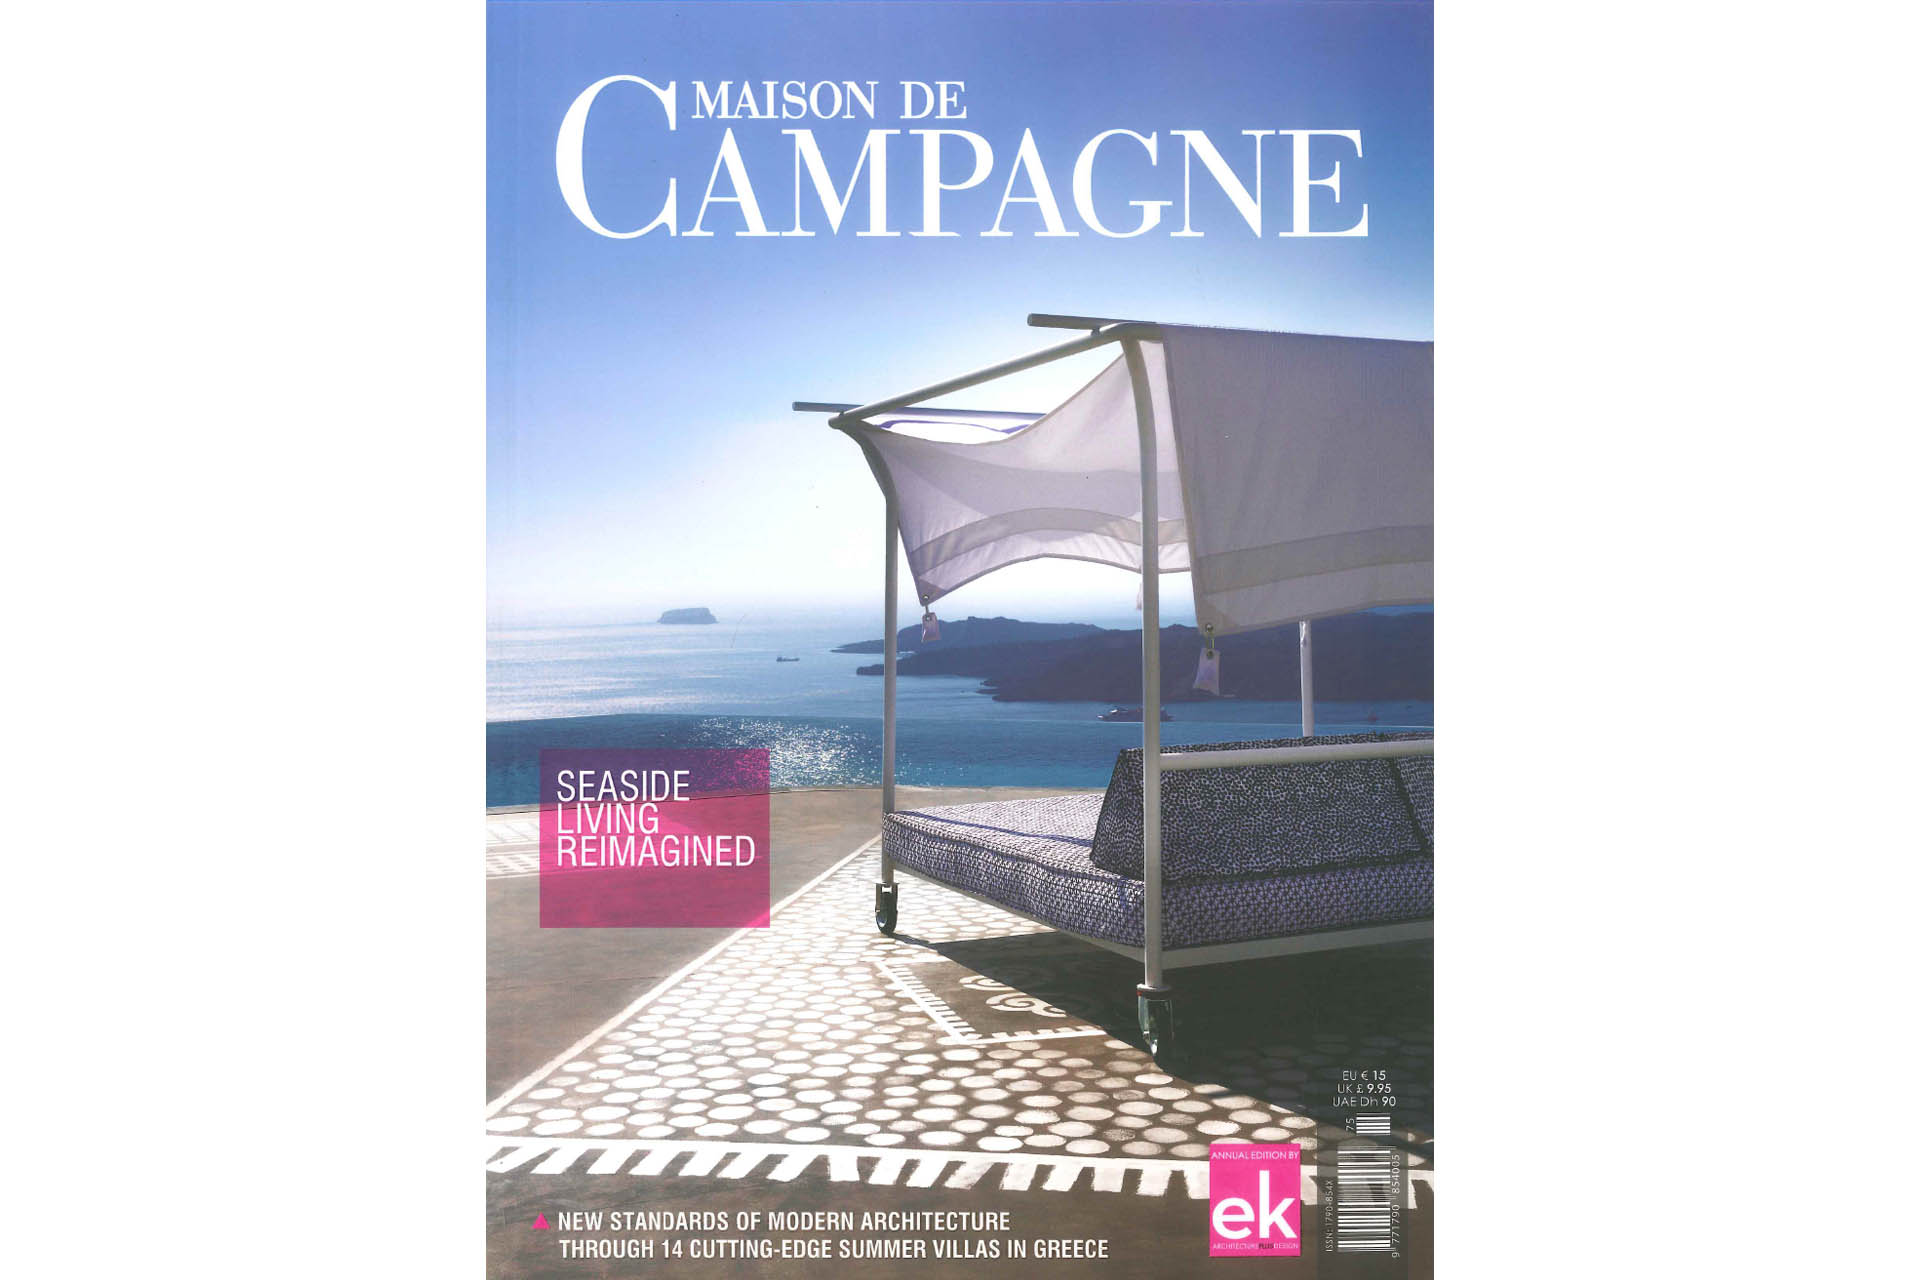 Louisa 39 S Image On The Cover Of Maison De Champagne 2017